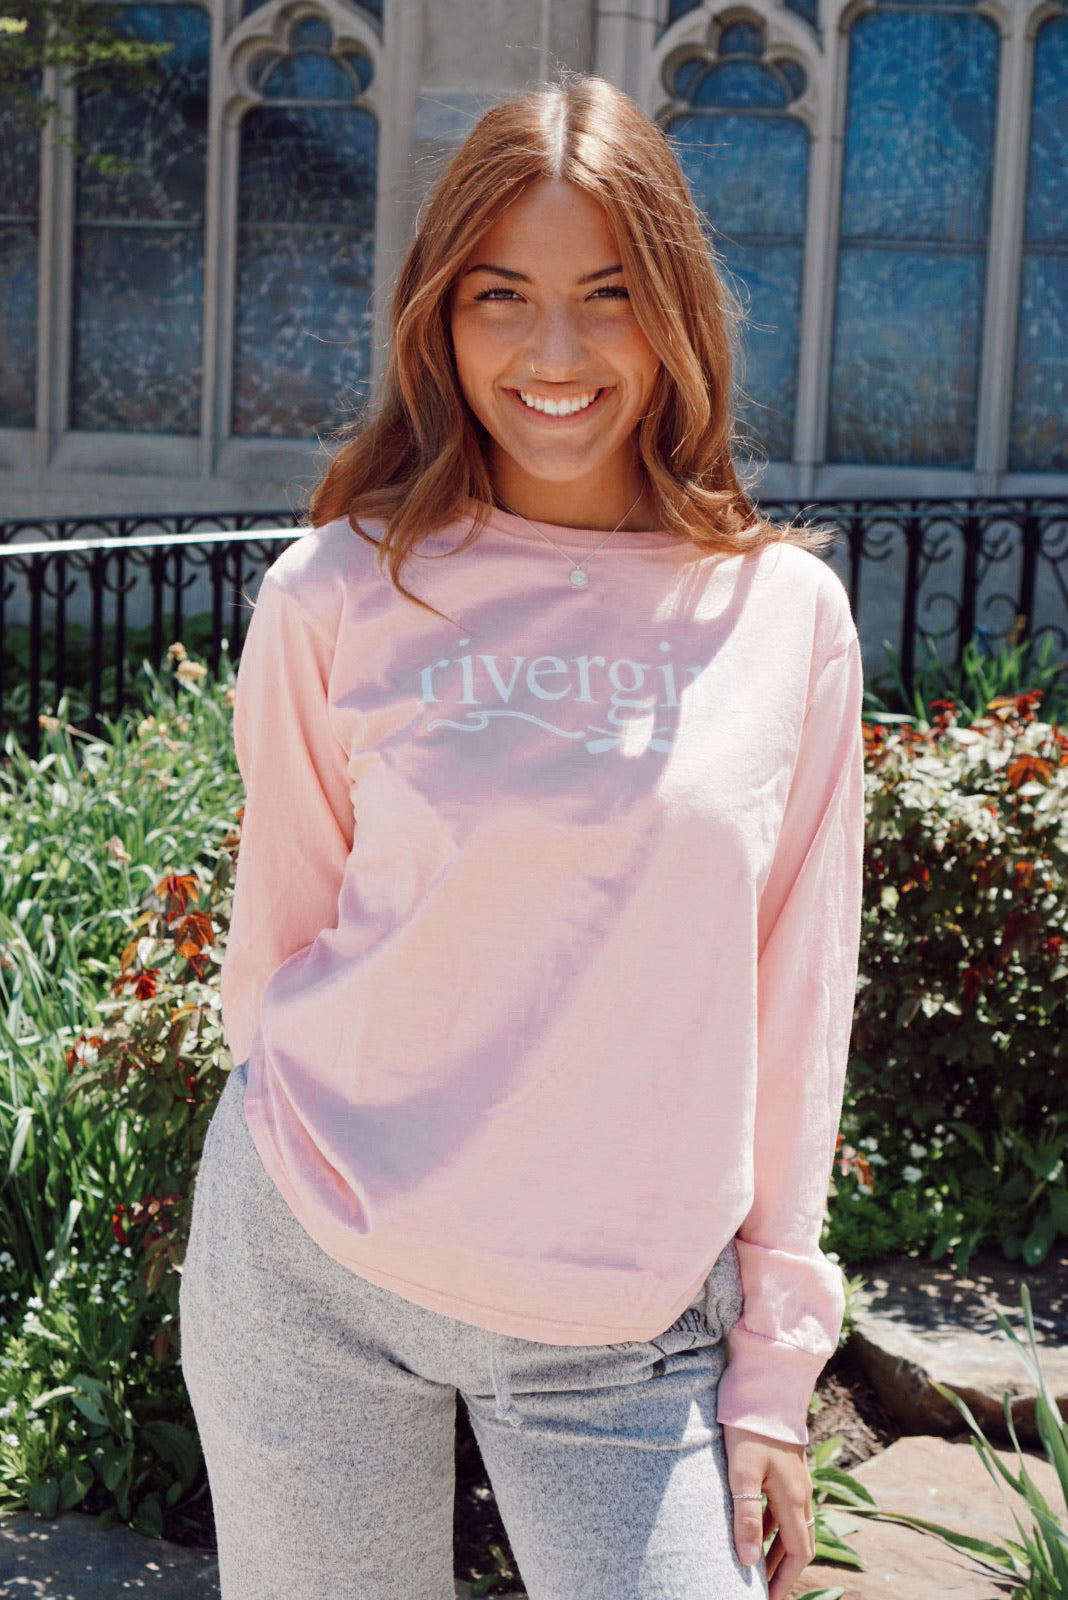 River Girl Rose Quartz Tee